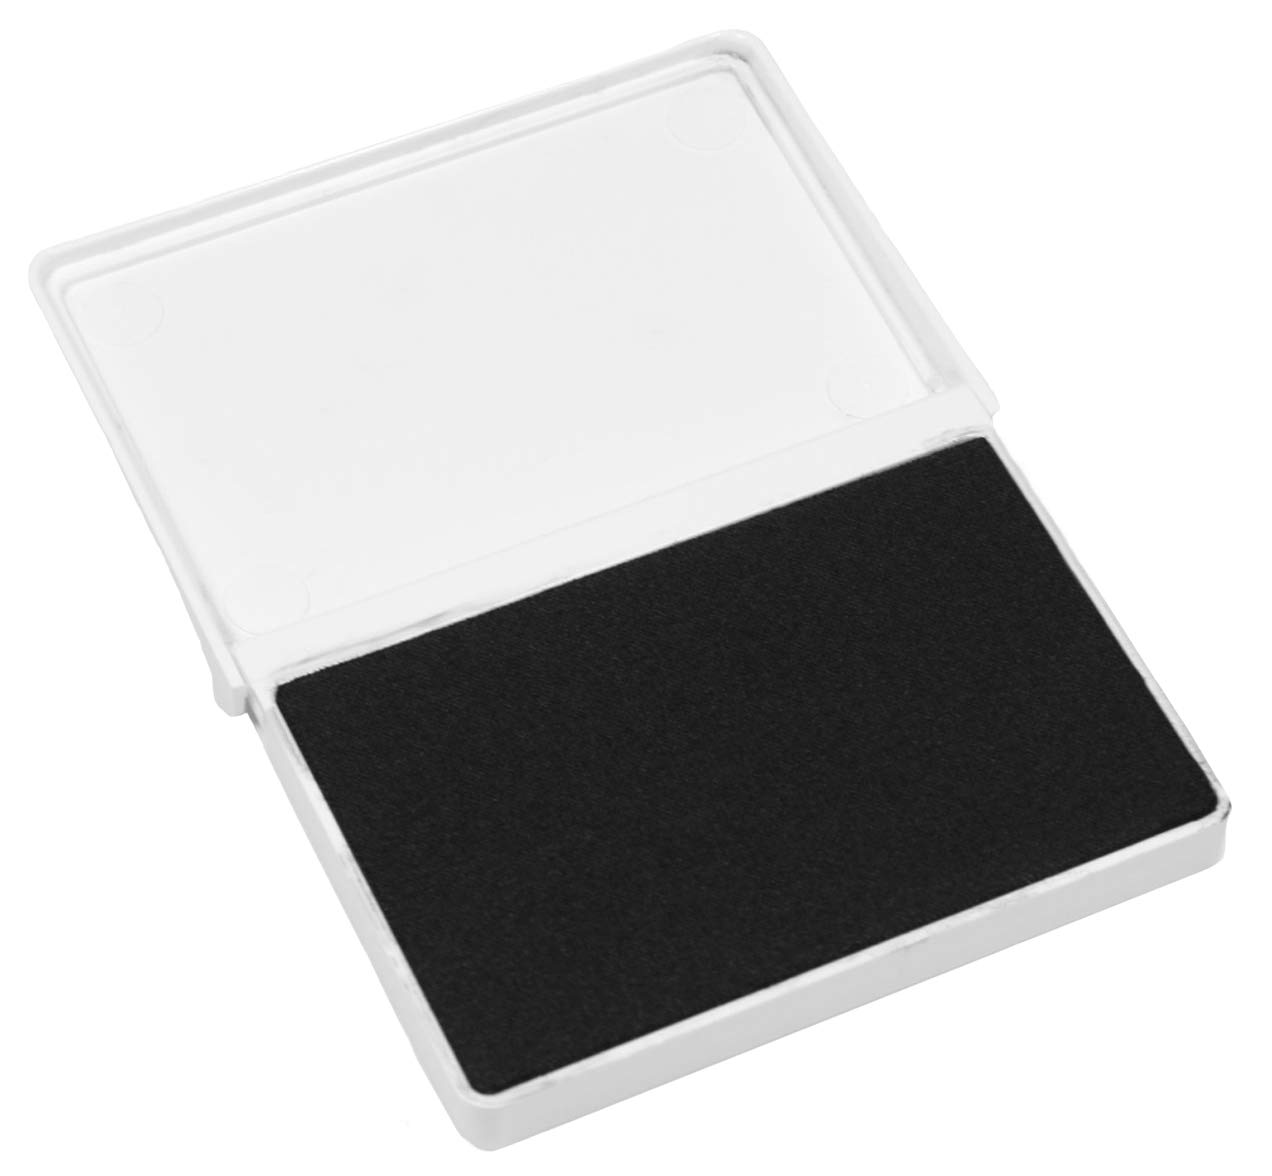 ExcelMark Ink Pad for Rubber Stamps 2-1/8'' by 3-1/4'' (Black Ink) - 2 Pack by ExcelMark